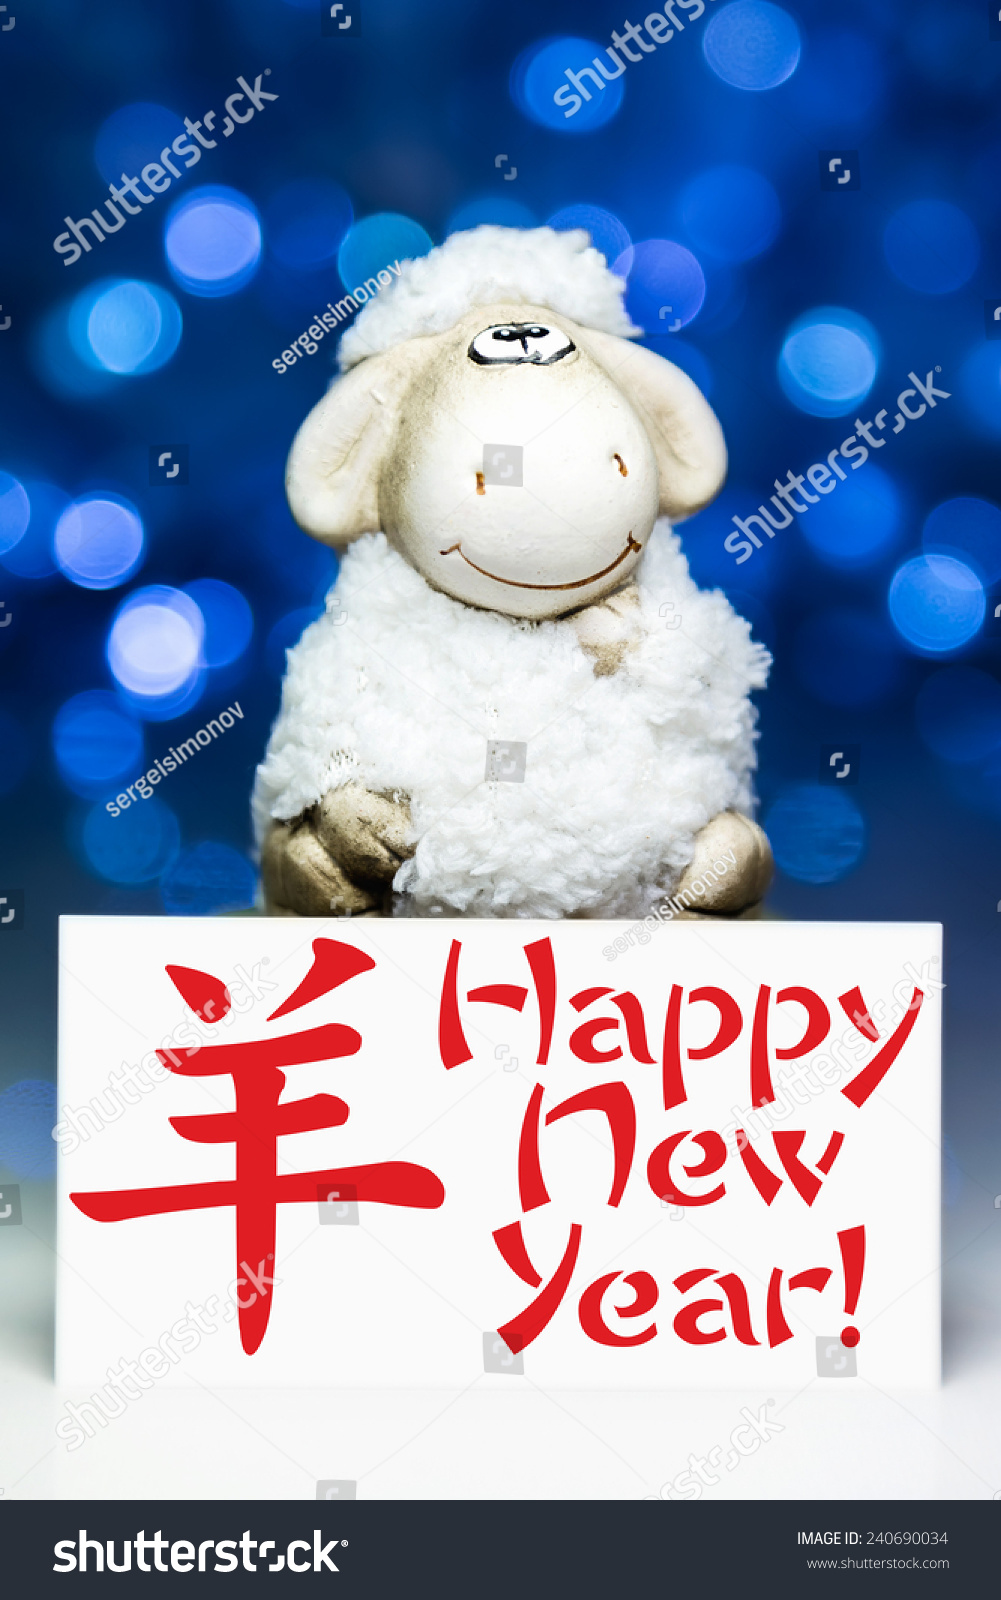 New year greeting card white sheep stock photo 240690034 new year greeting card with white sheep toy the chinese symbol of 2015 year on blurred kristyandbryce Image collections